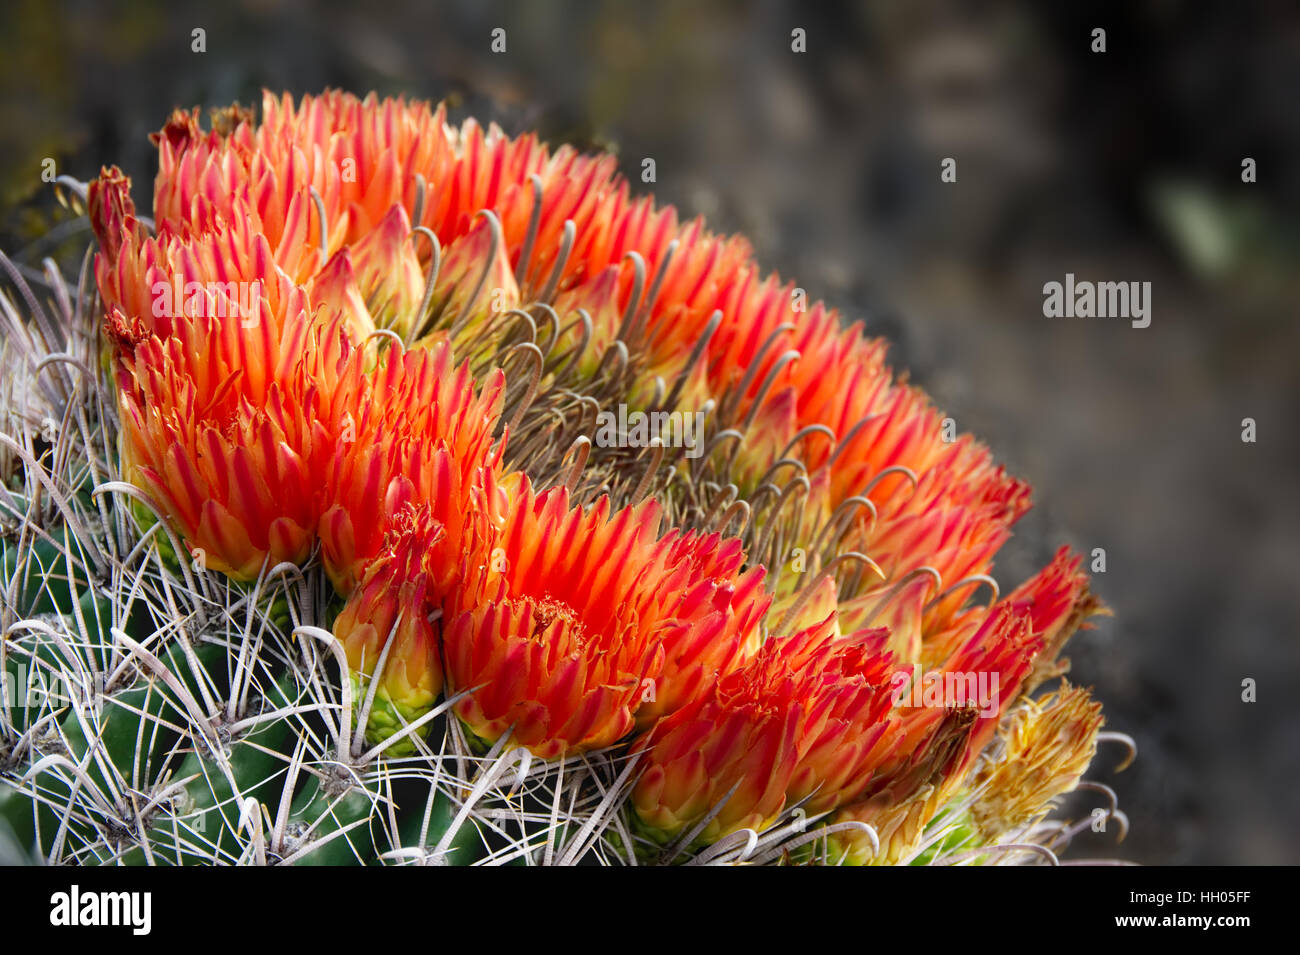 Glowing red blossoms encircle the head of a fishhook barrel cactus. - Stock Image